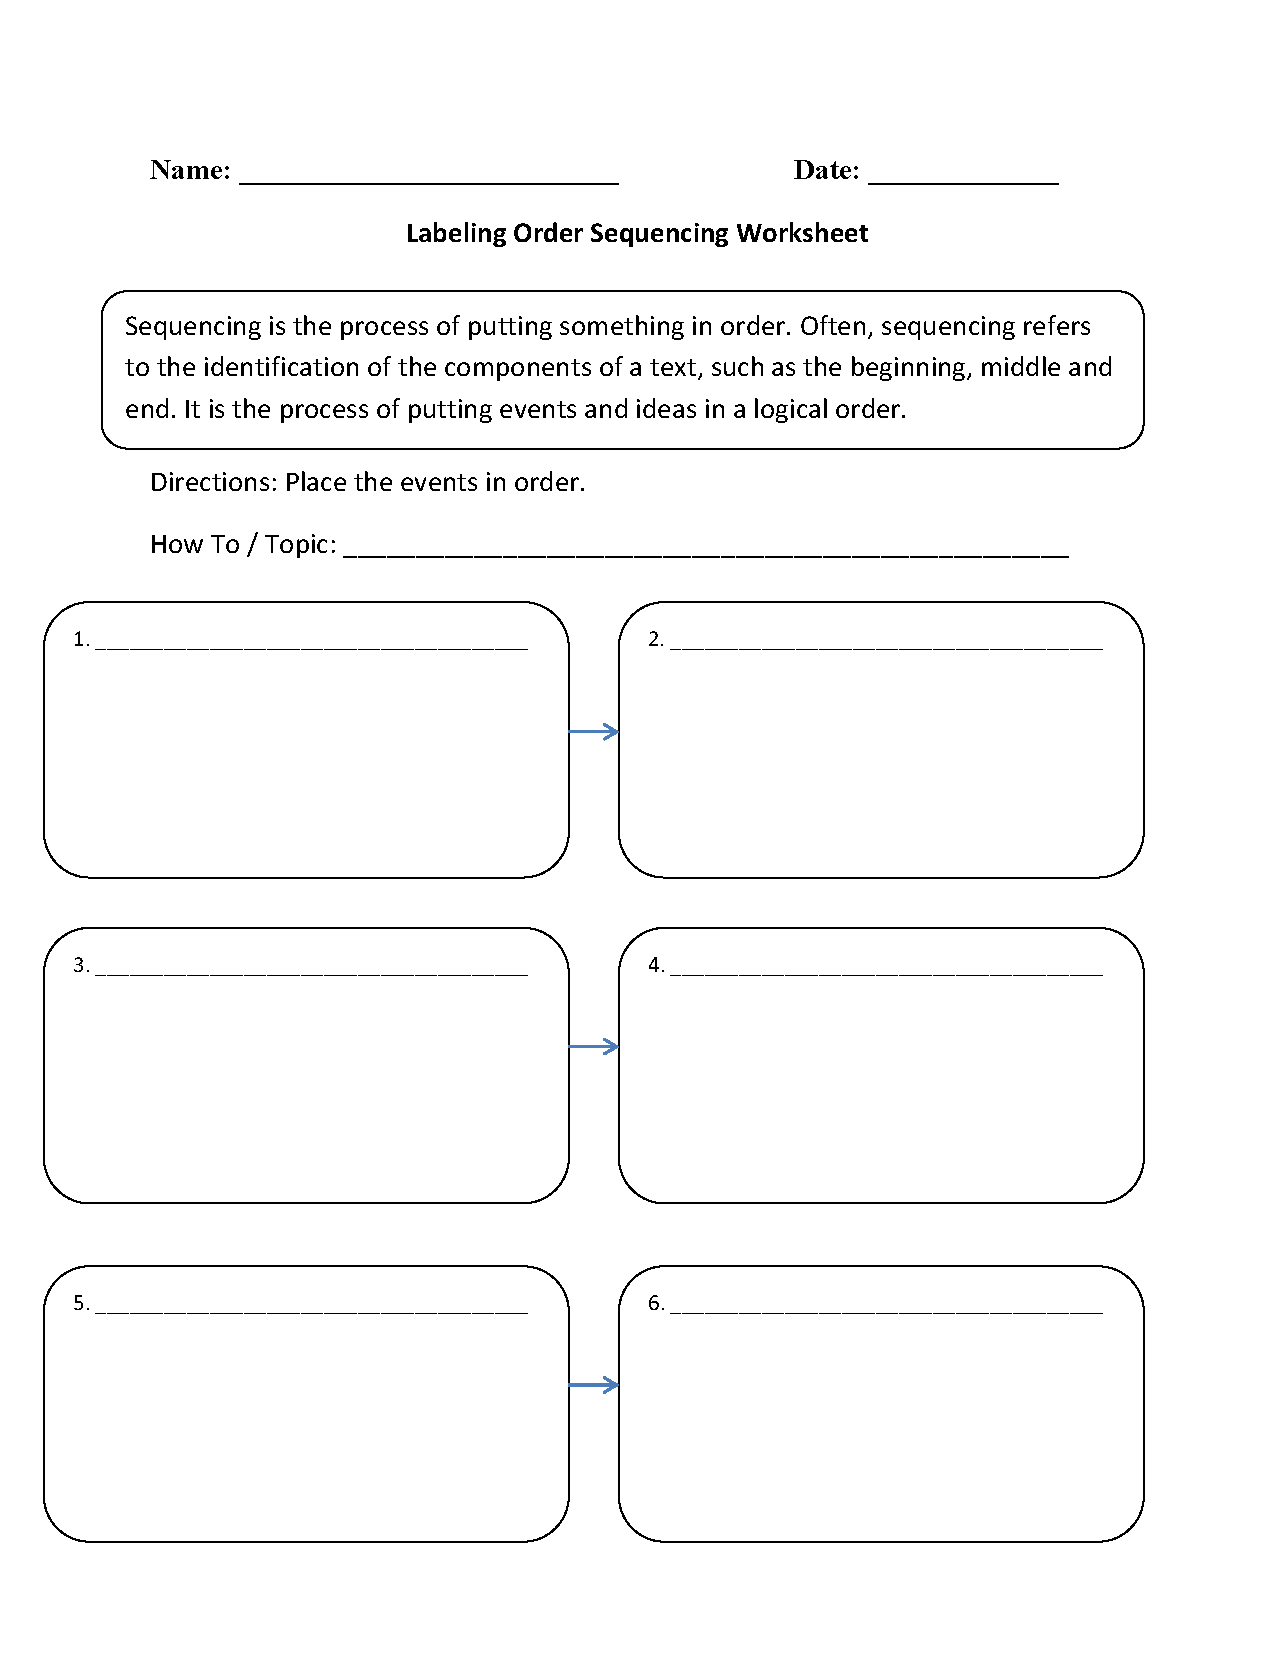 Writing Worksheets | Sequencing Worksheets - Free Printable | Free Printable Sequencing Worksheets 2Nd Grade